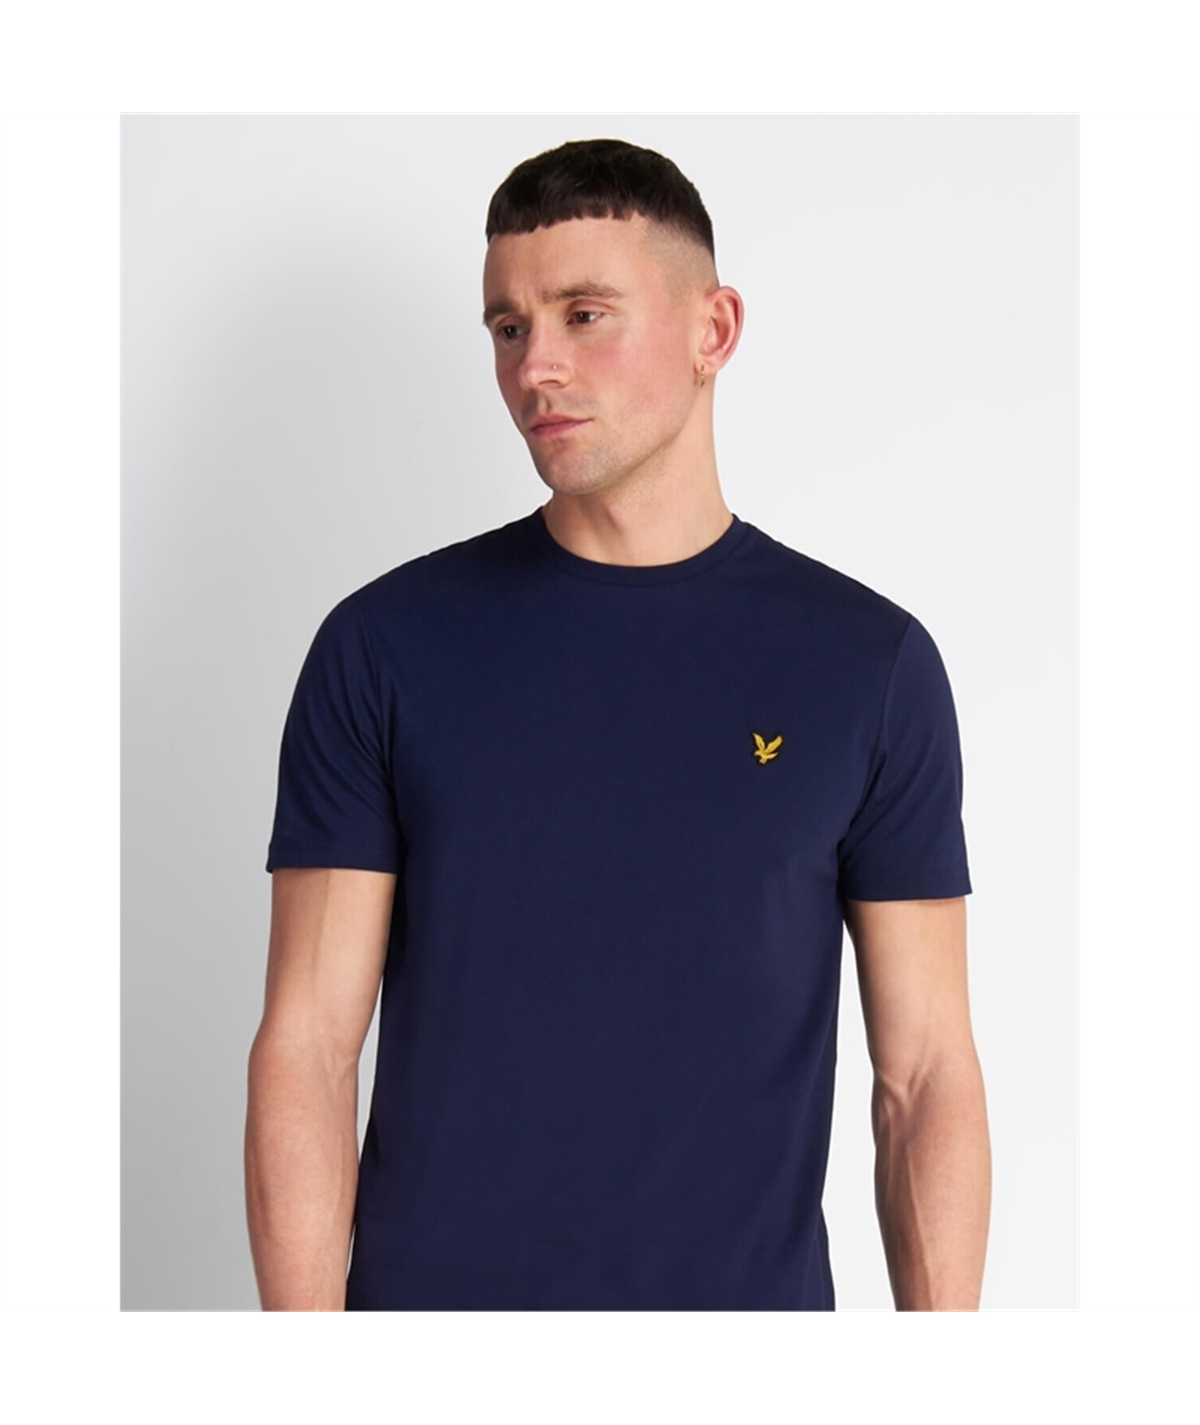 TS400V_Z99 T-SHIRT GIROCOLLO LYLE SCOTT